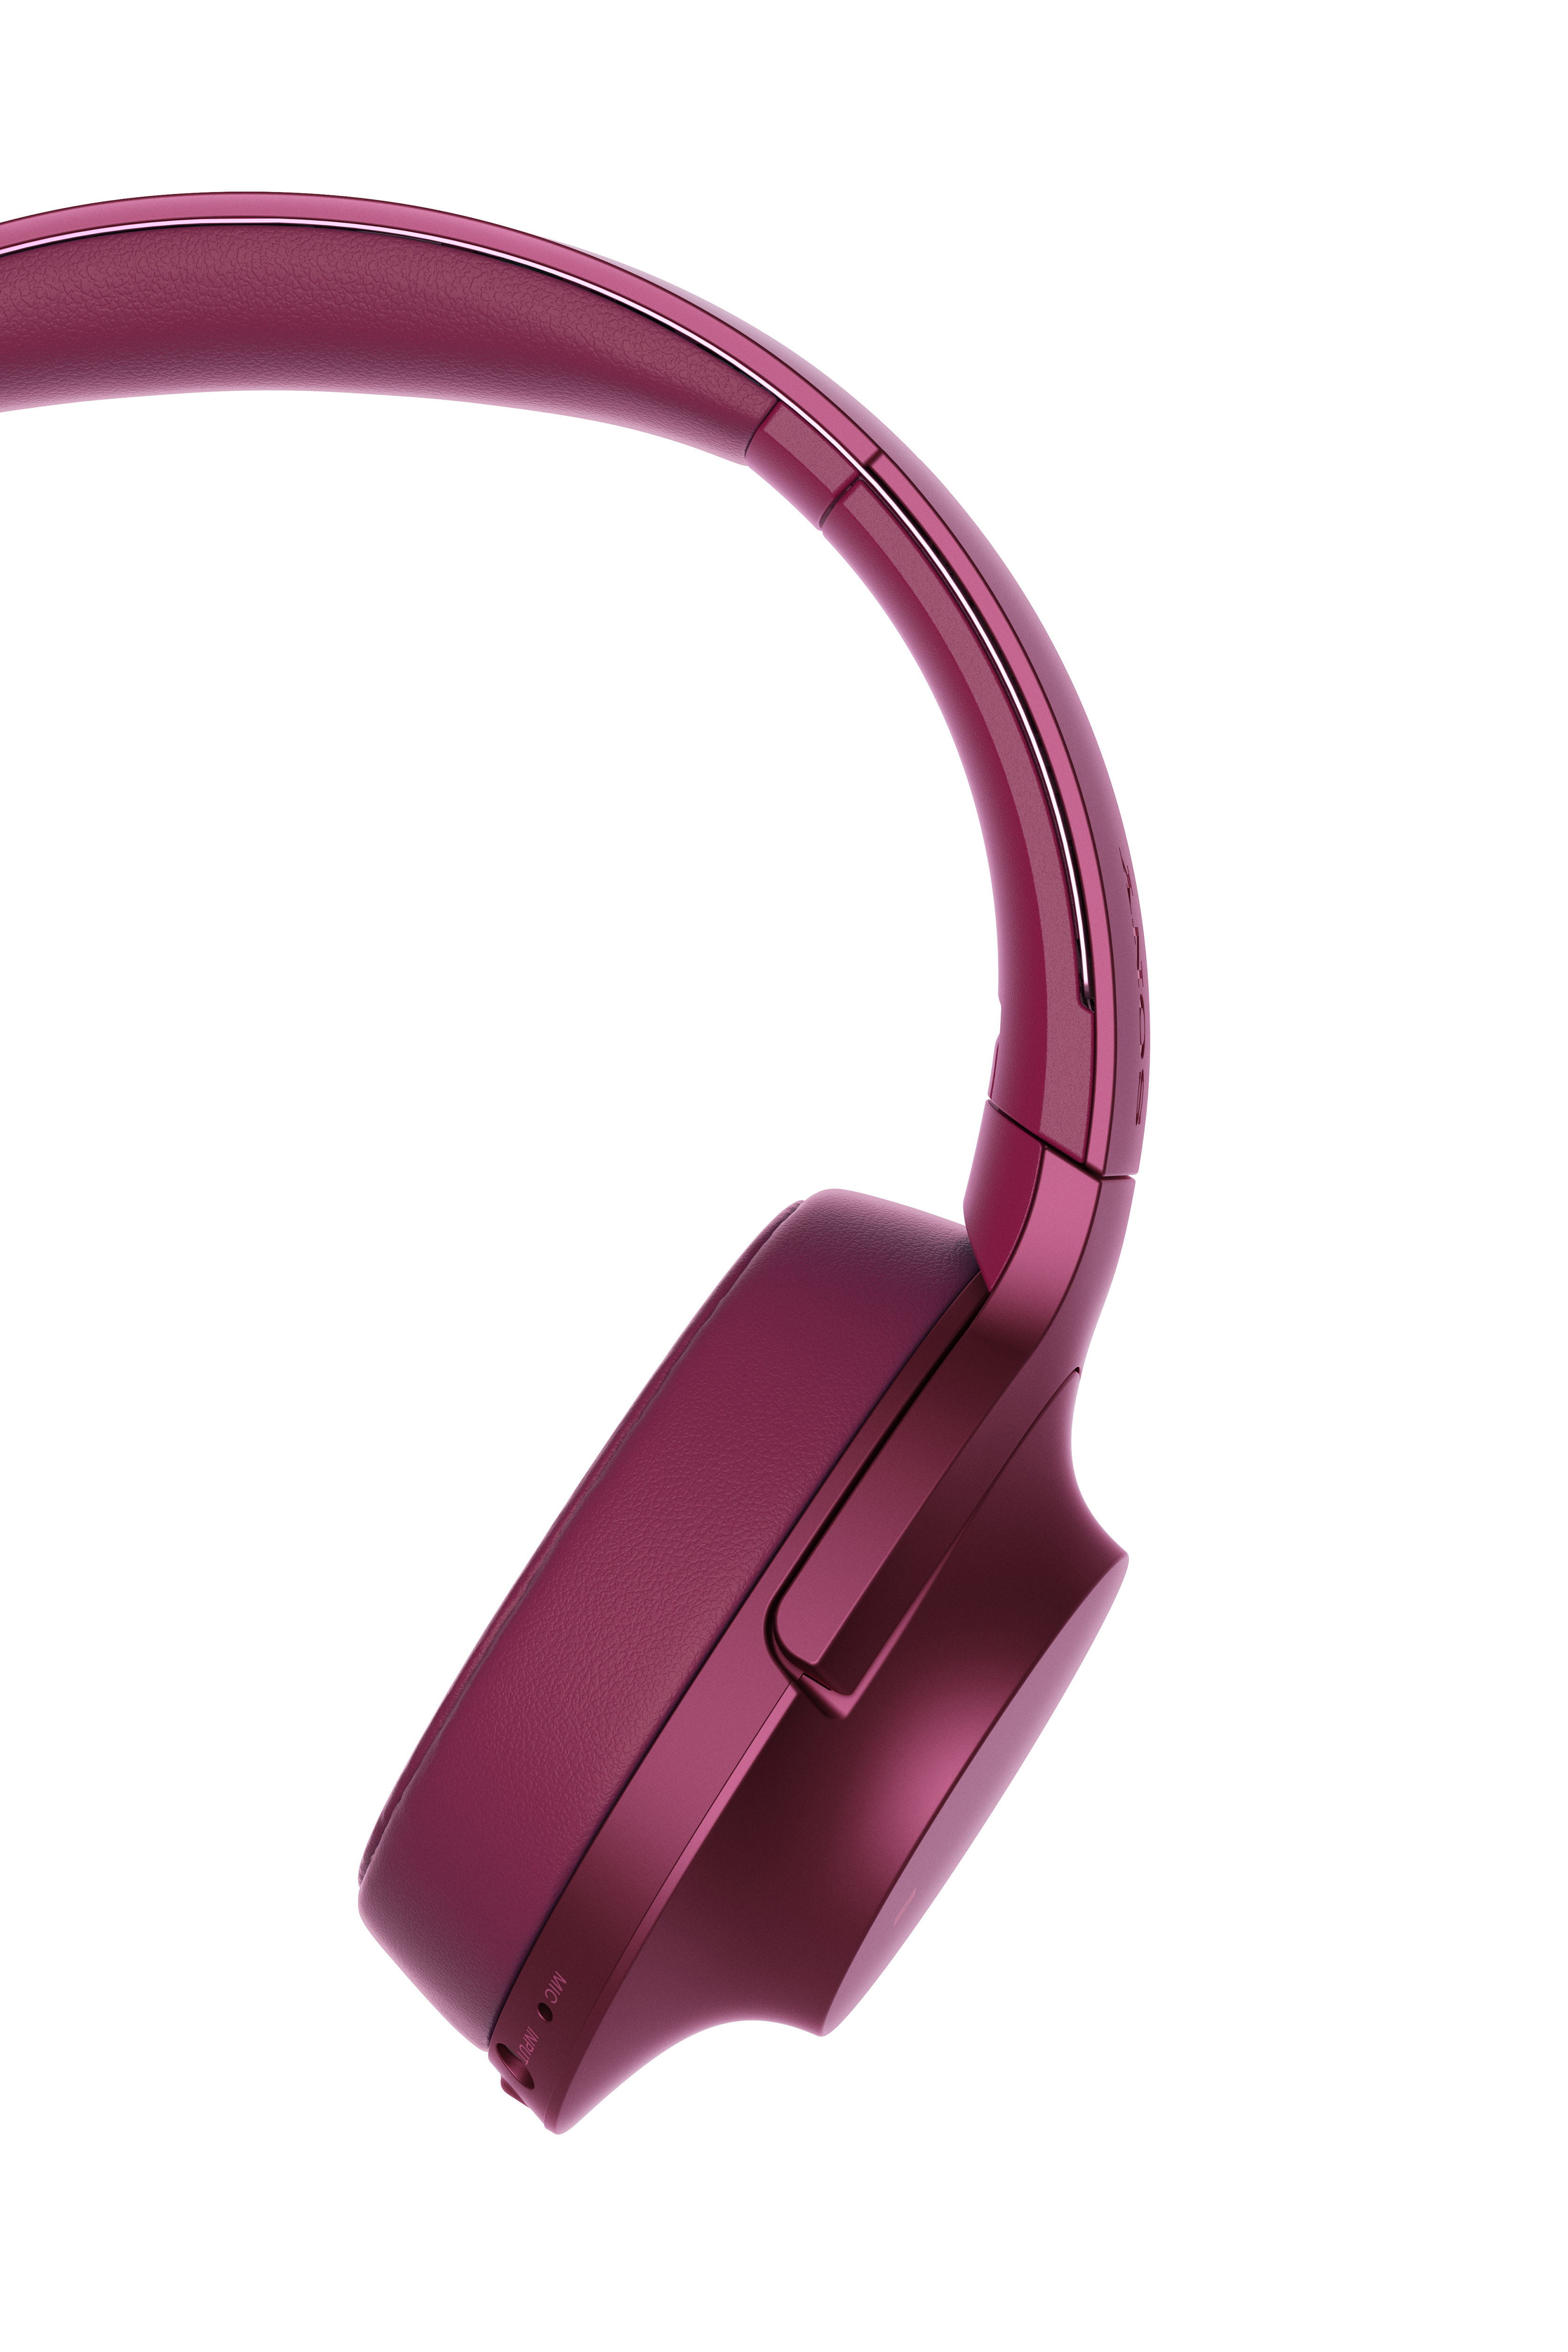 Headphones qcy q29 - Sony h.ear (Pink) Overview